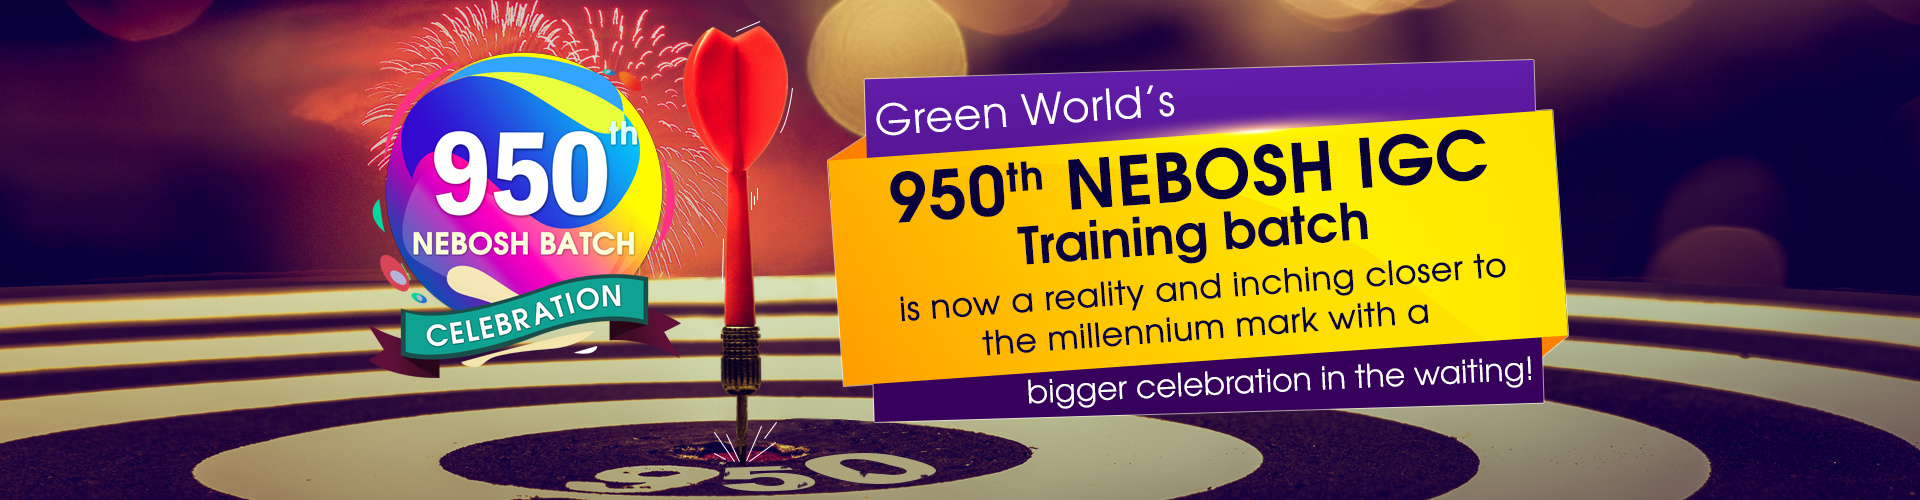 NEBOSH-IGC_950_batch_Celebration_Banner_coin_03